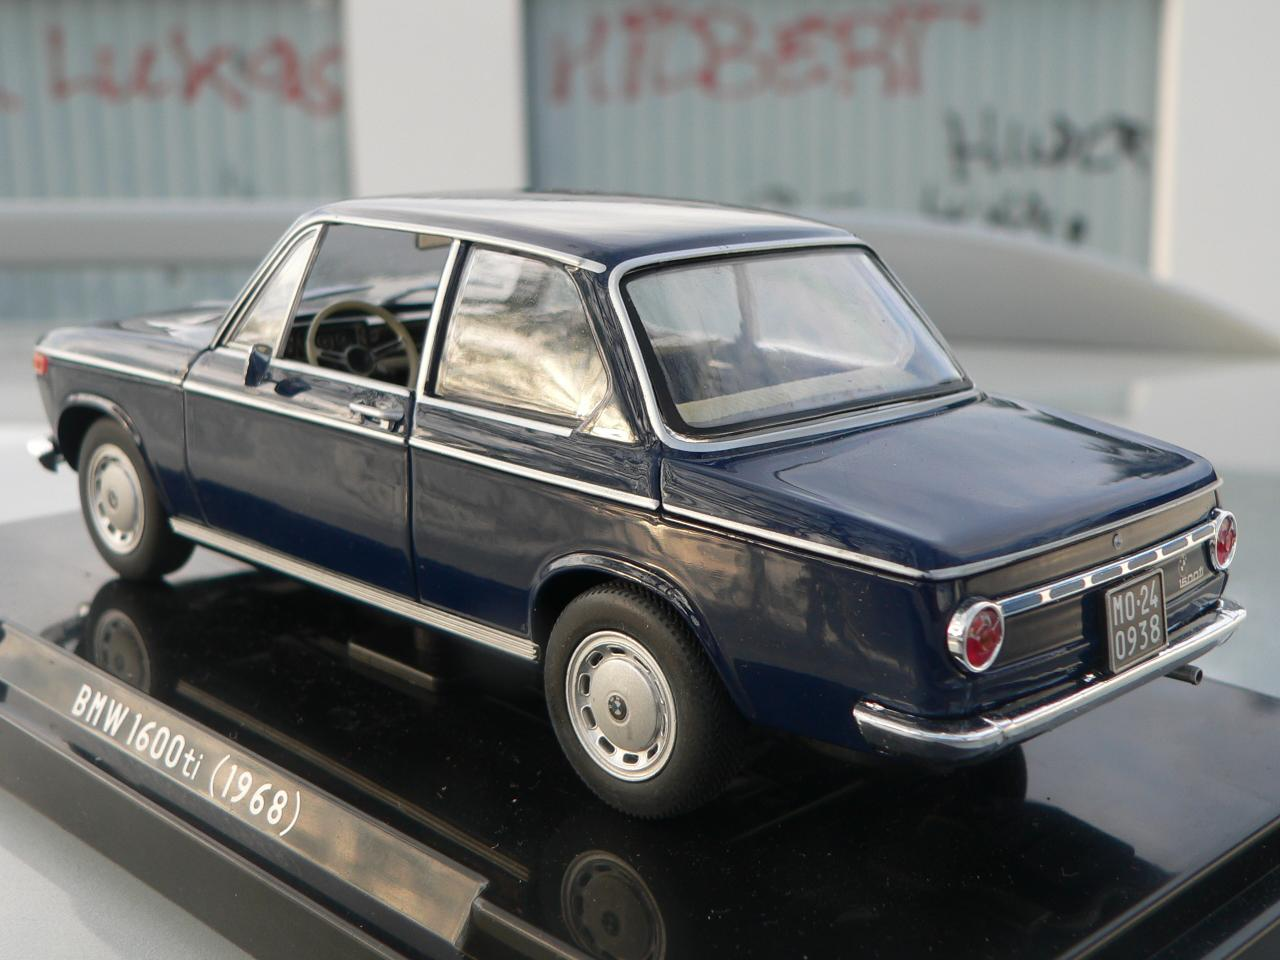 2014 revell germany new releases car kit news reviews. Black Bedroom Furniture Sets. Home Design Ideas